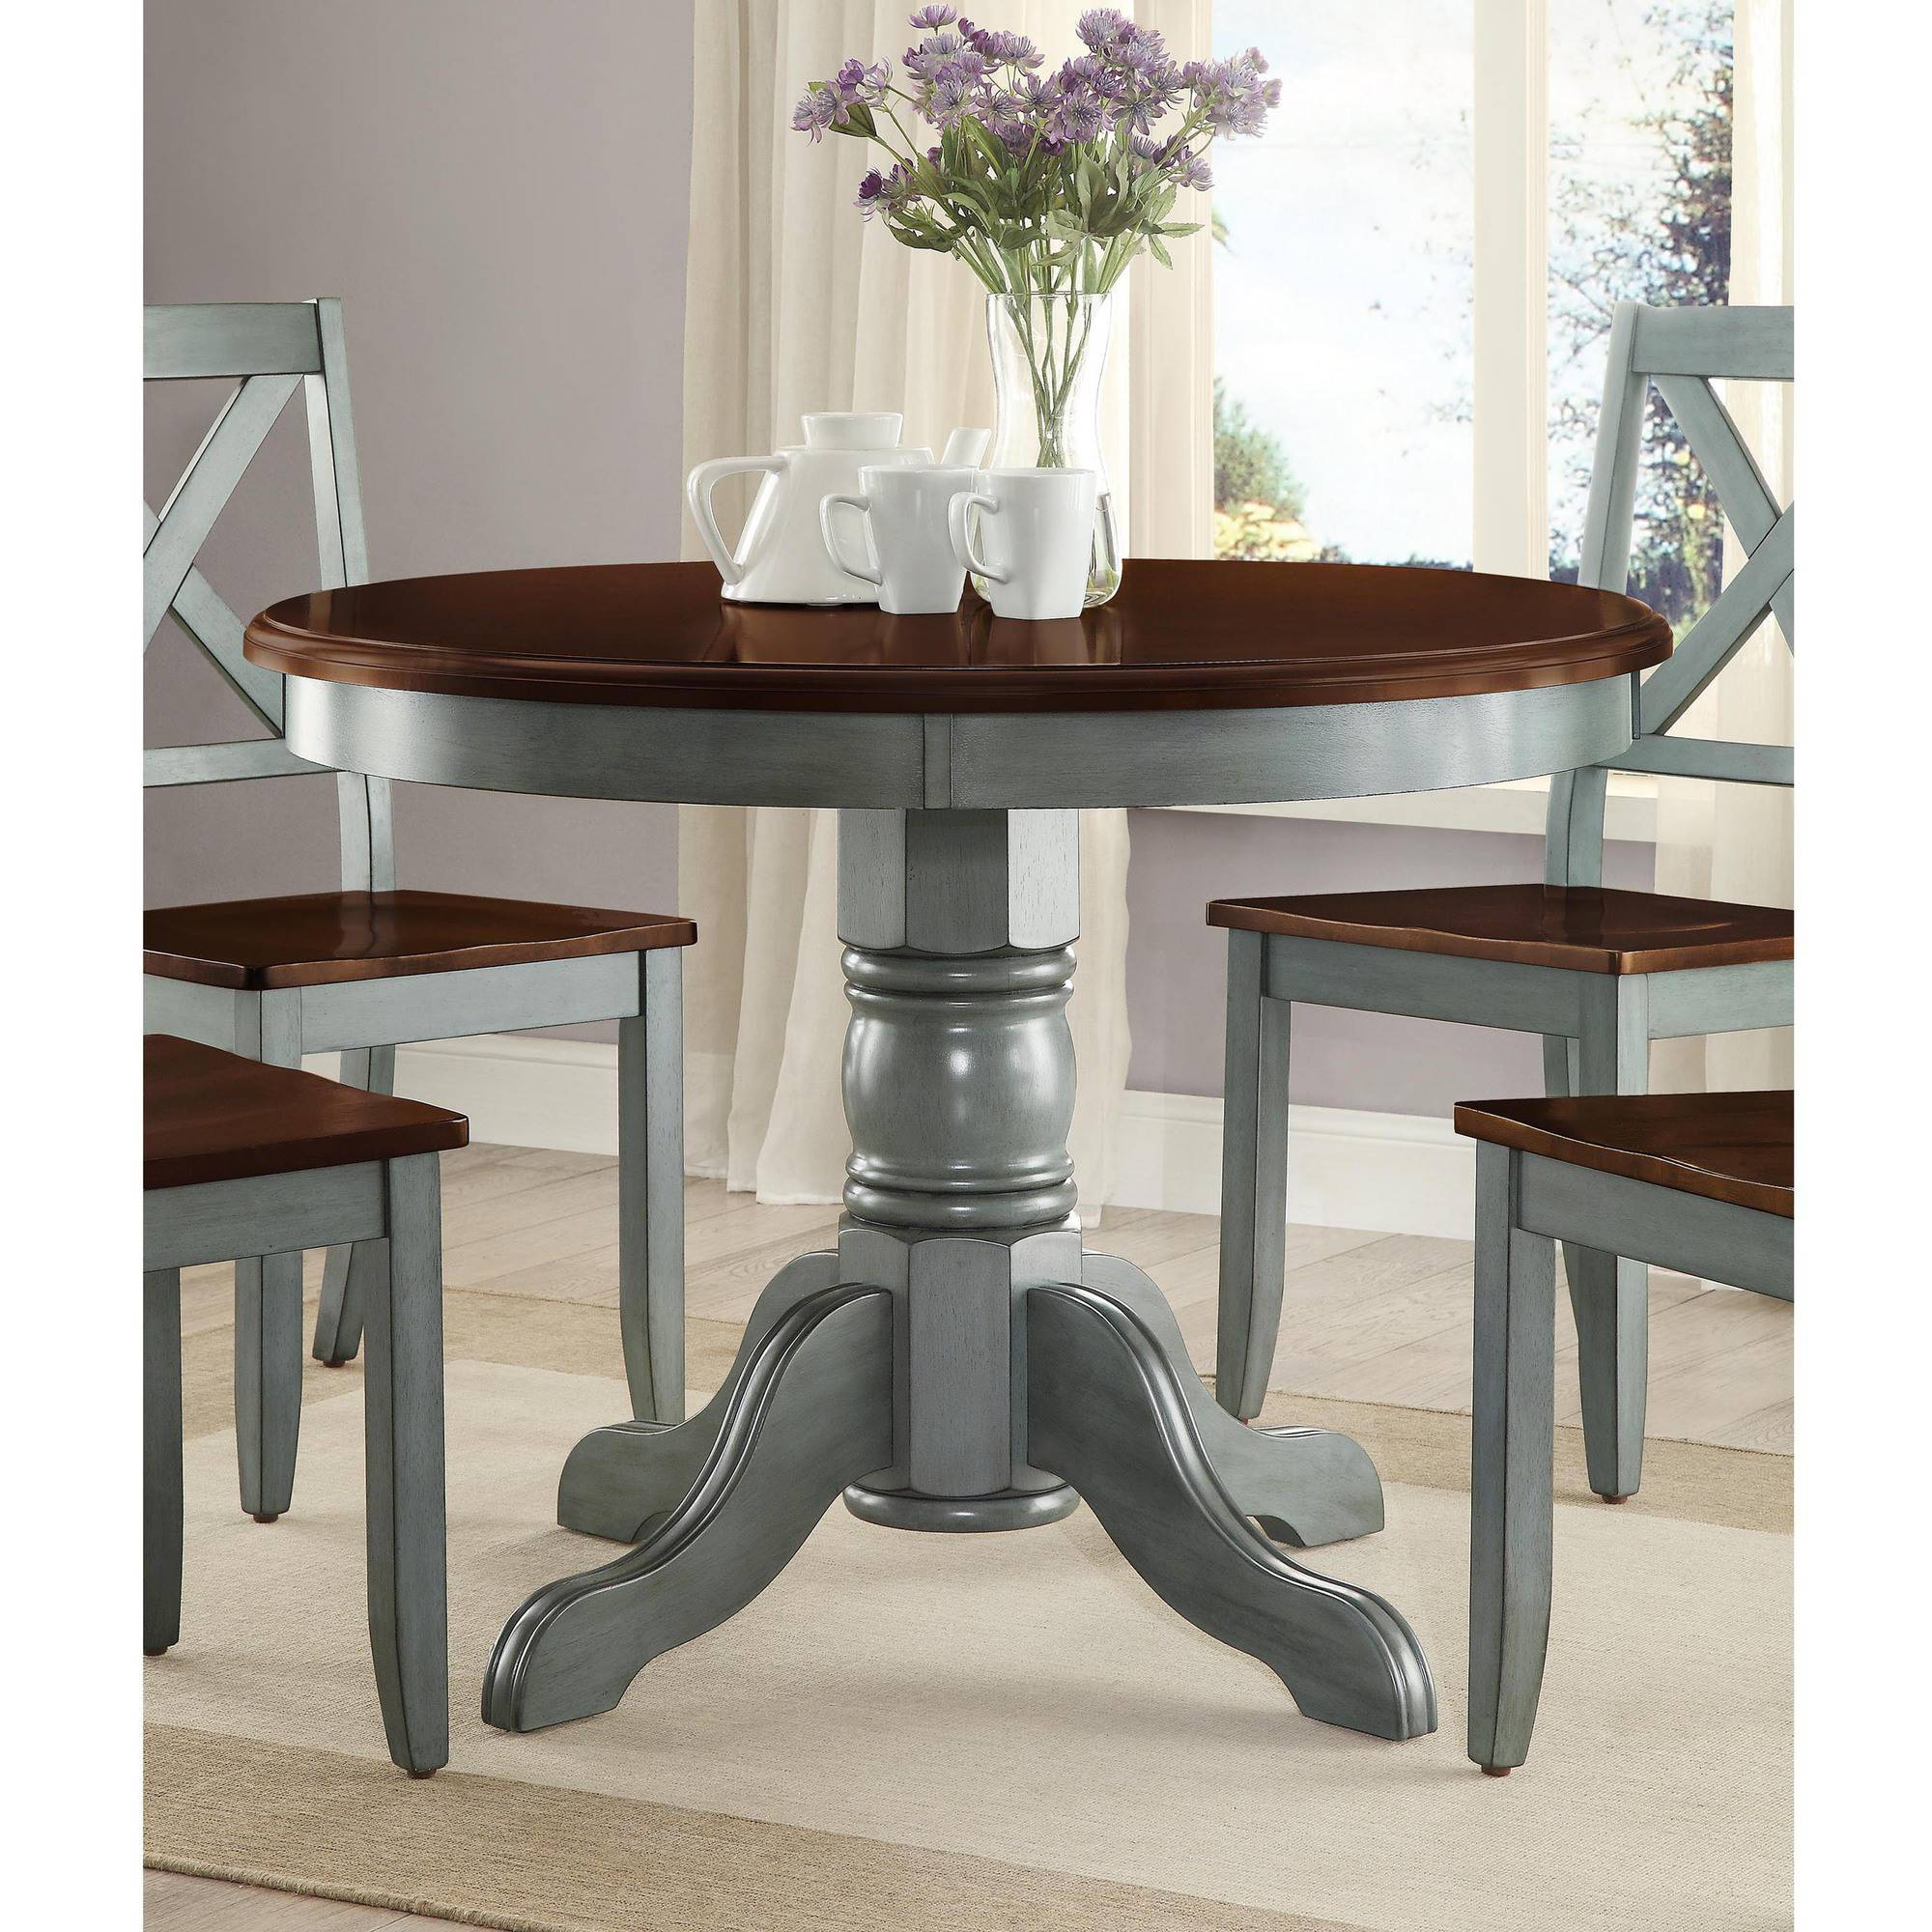 Dining Table In Kitchen Better Homes And Gardens Cambridge Place Dining Table Blue